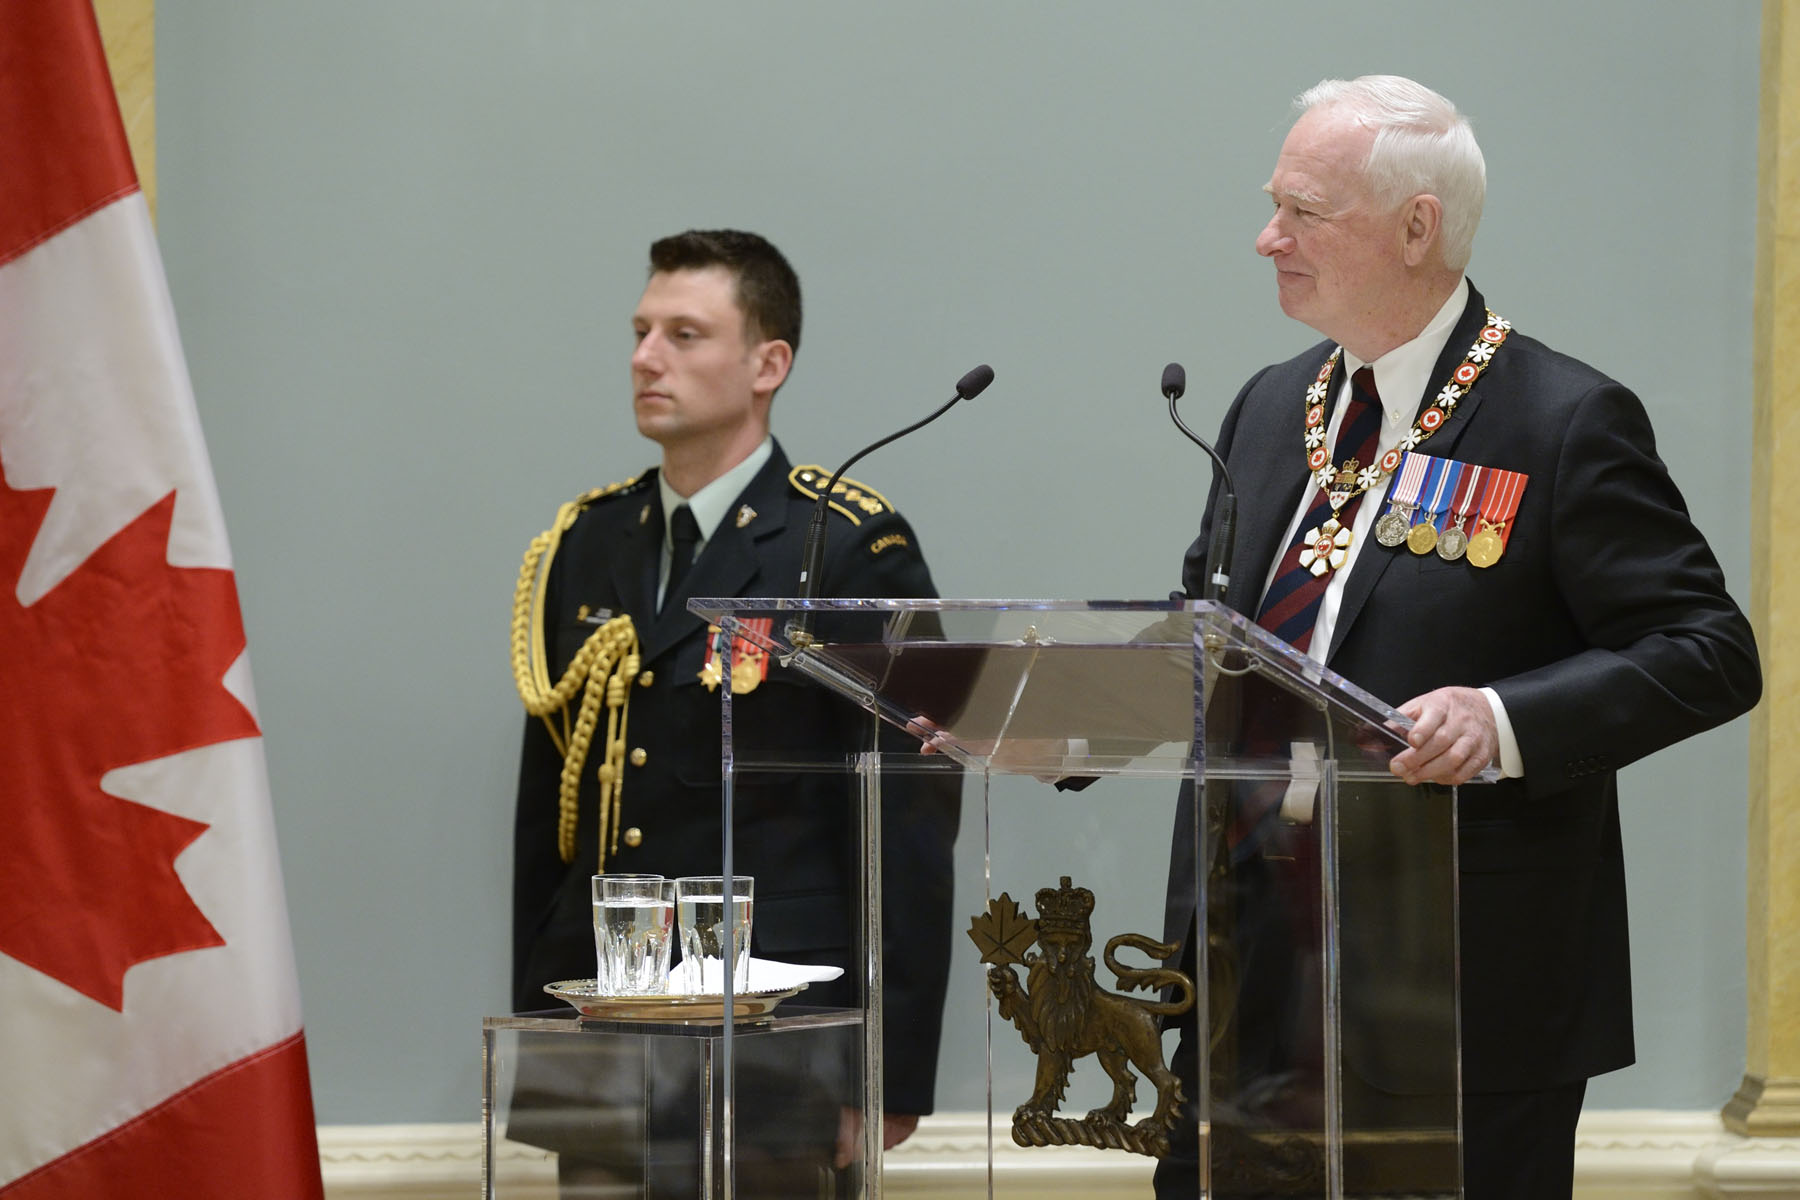 """With this honour, you're part of an extraordinary network of people that spans the length and breadth of this country,"" said His Excellency. ""Think about the great things you can learn and achieve together! For yourselves, your communities and for Canada."""